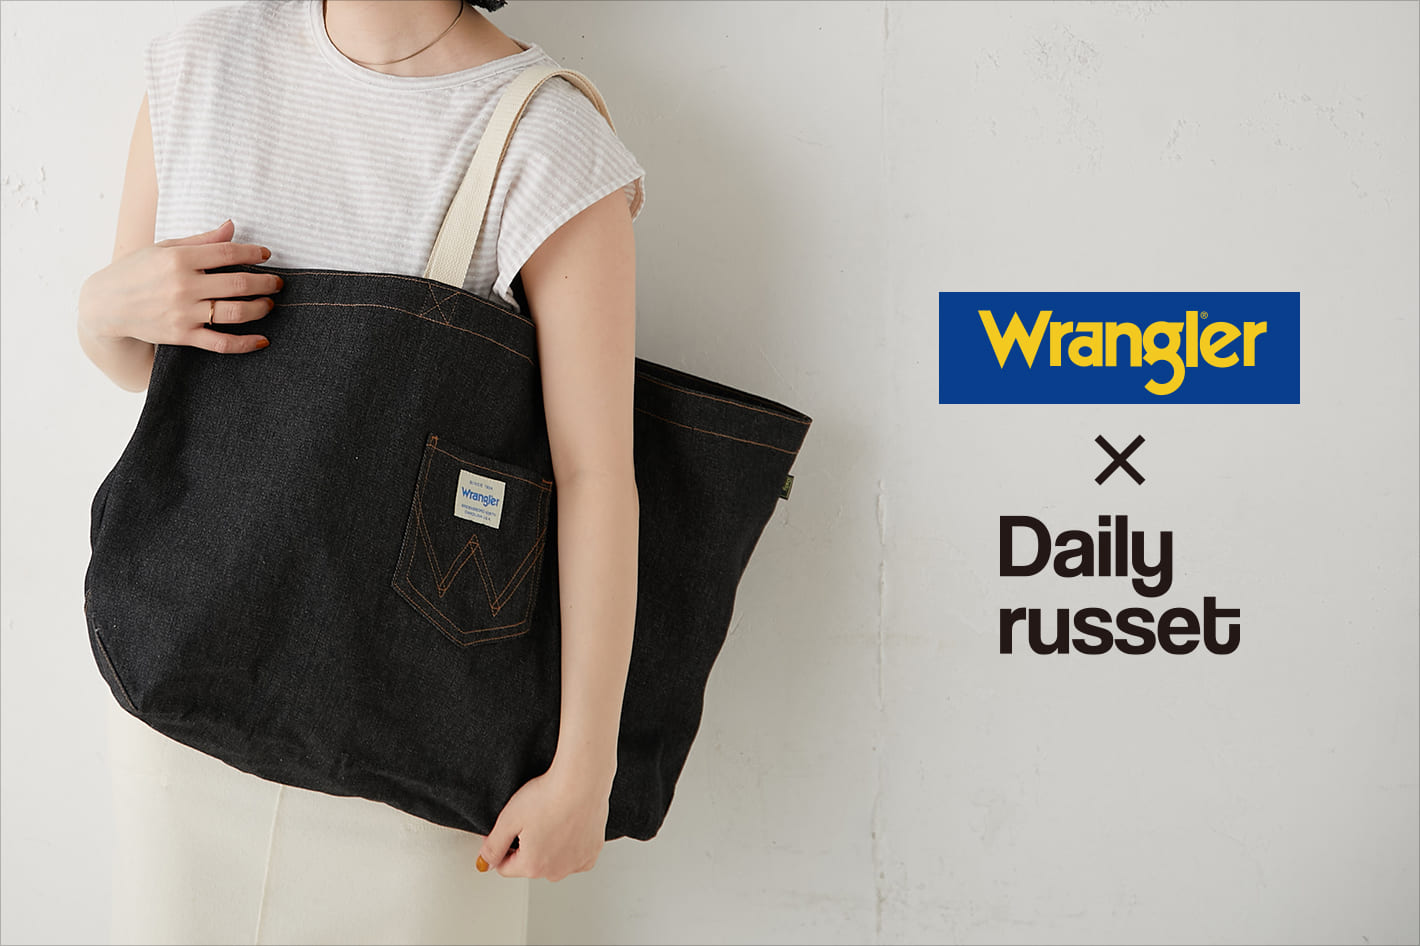 Daily russet ◆Wrangler×Dailyrusset◆コラボアイテムが発売開始!